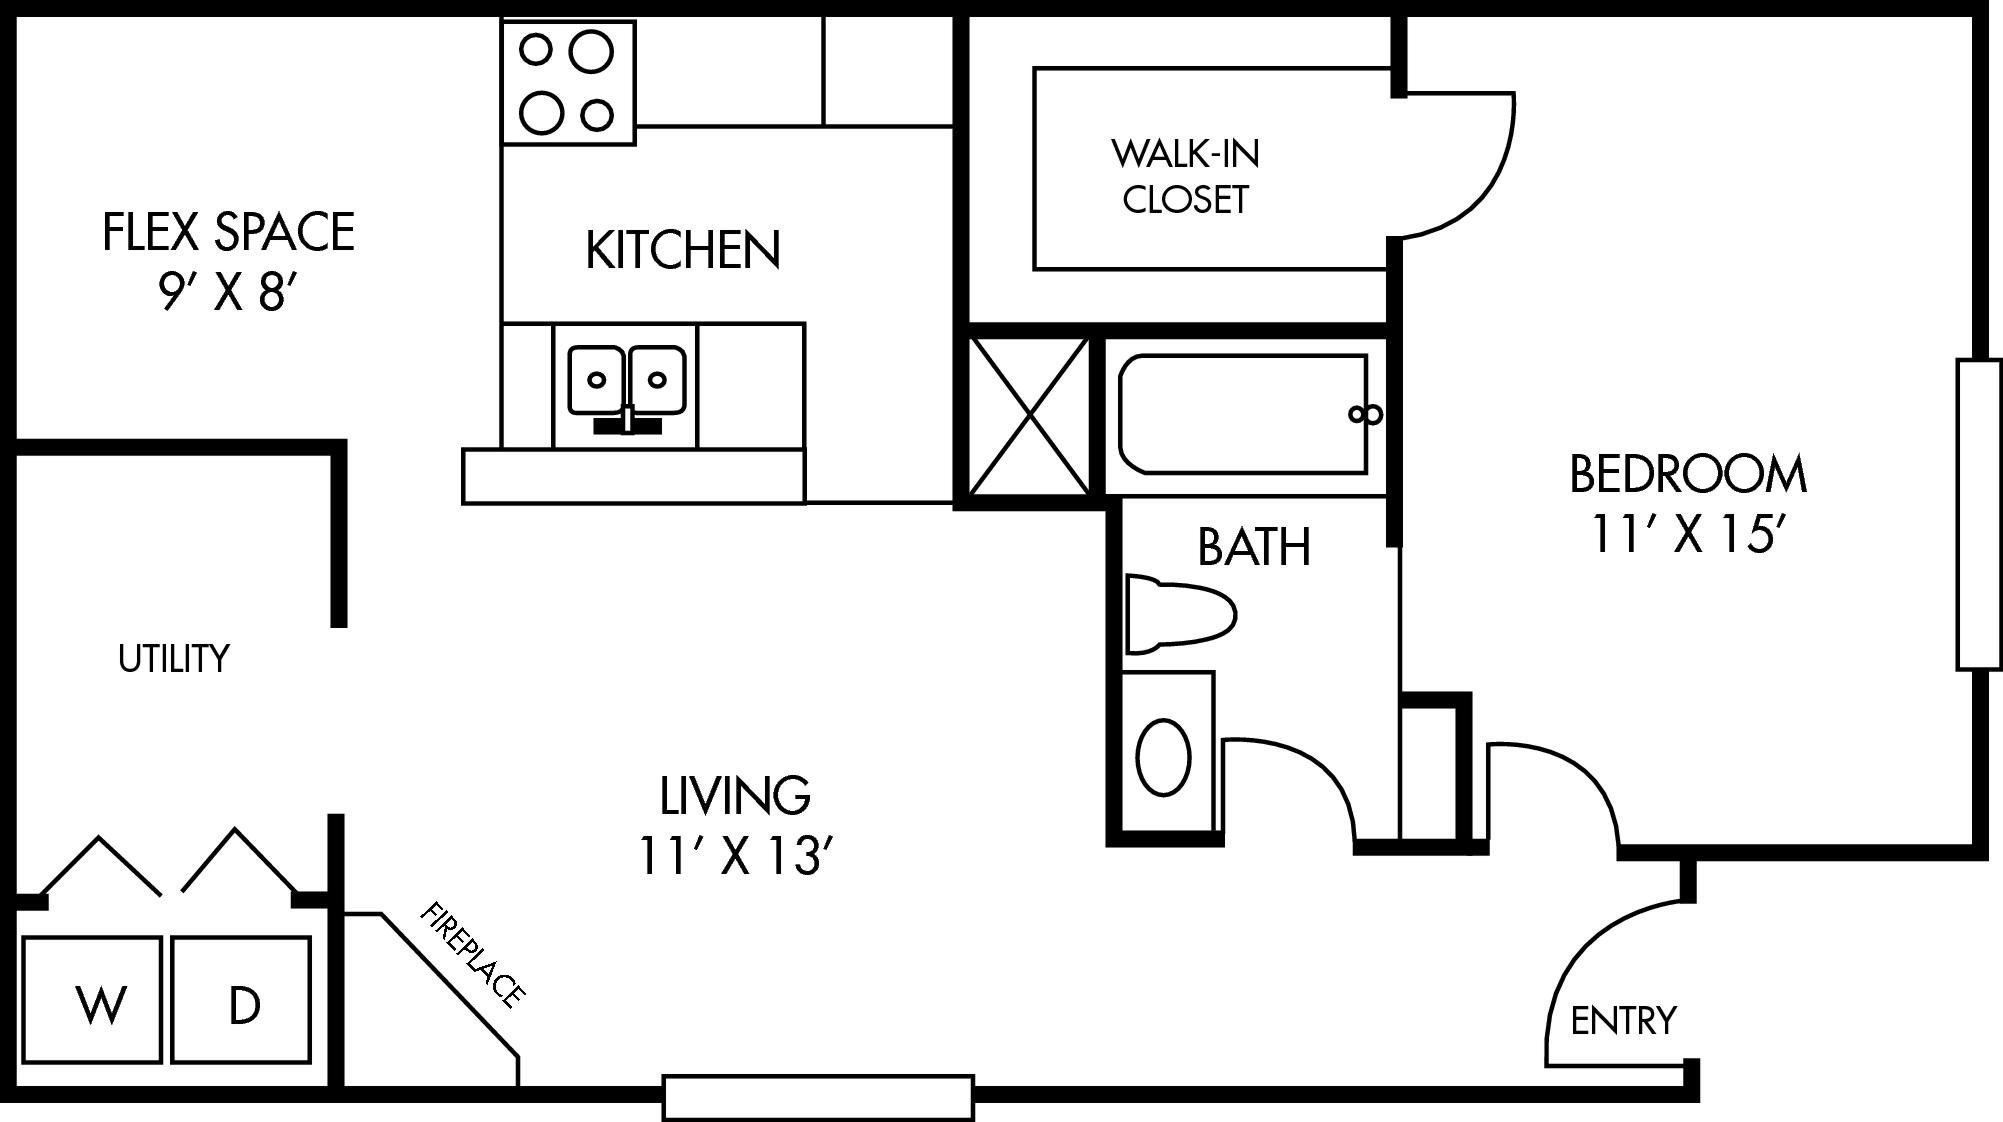 Breckenridge at Cityview 1 bed 1 bath with Dinning Area Floor Plan 643 square feet